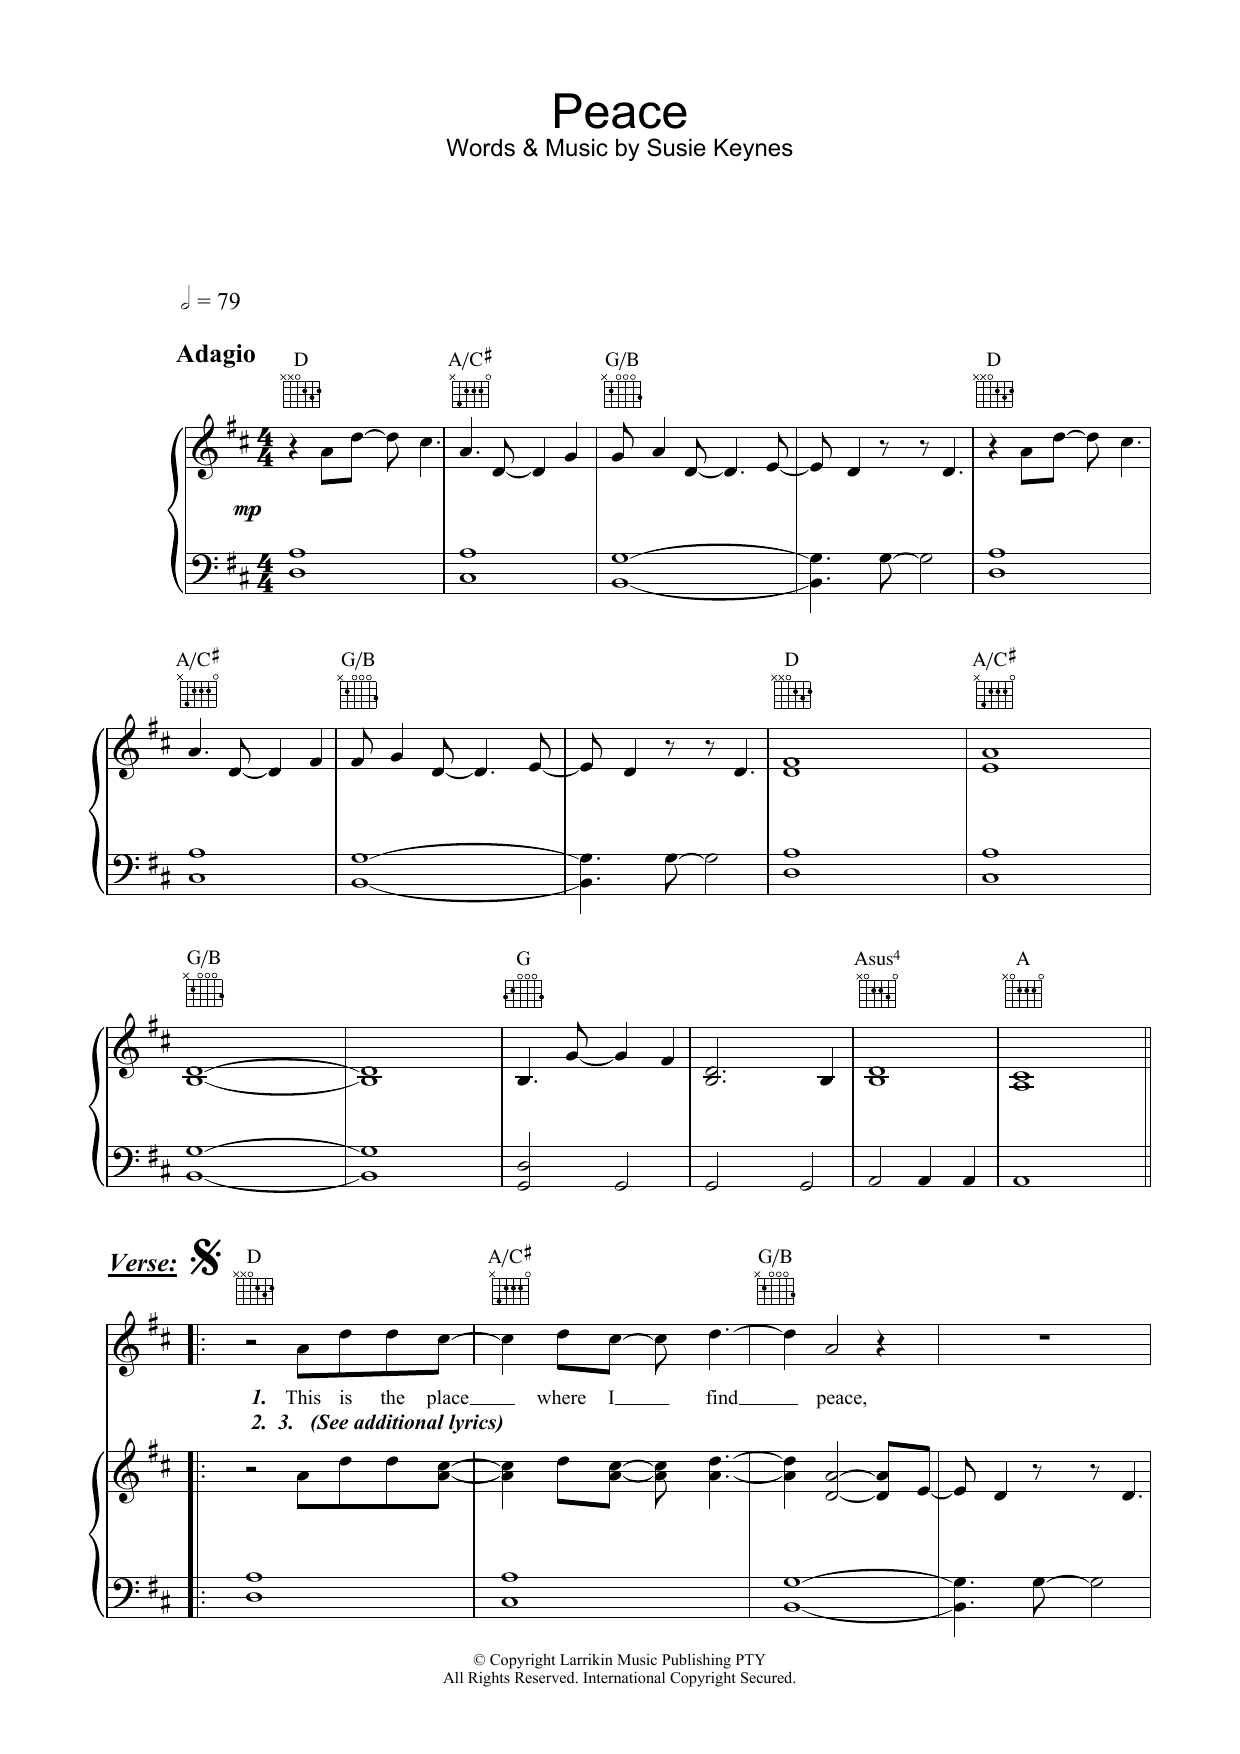 Fruit Peace sheet music preview music notes and score for Piano, Vocal & Guitar (Right-Hand Melody) including 8 page(s)